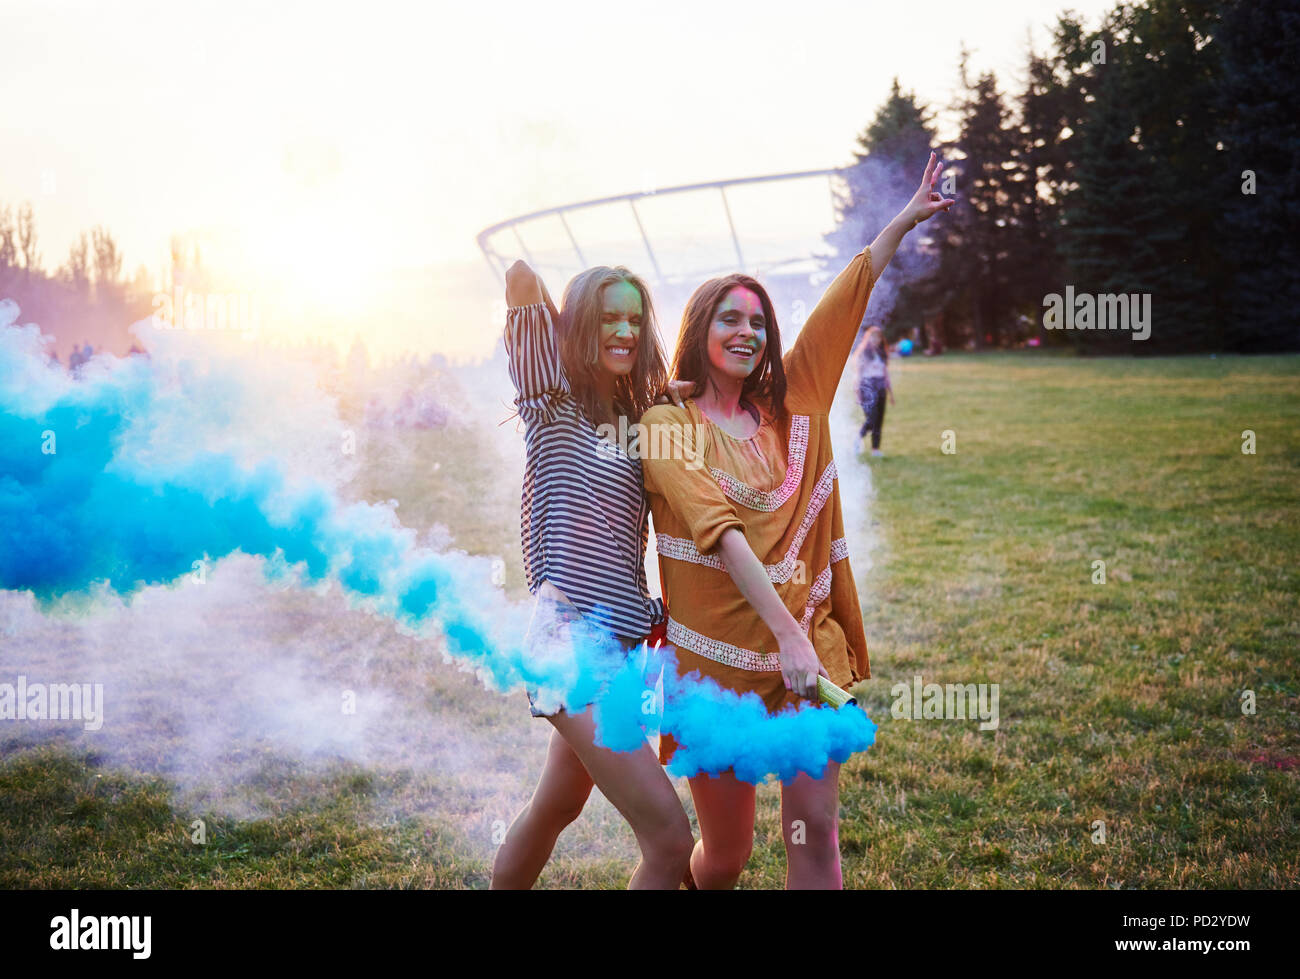 Two young women dancing with blue smoke bombs at Holi Festival - Stock Image